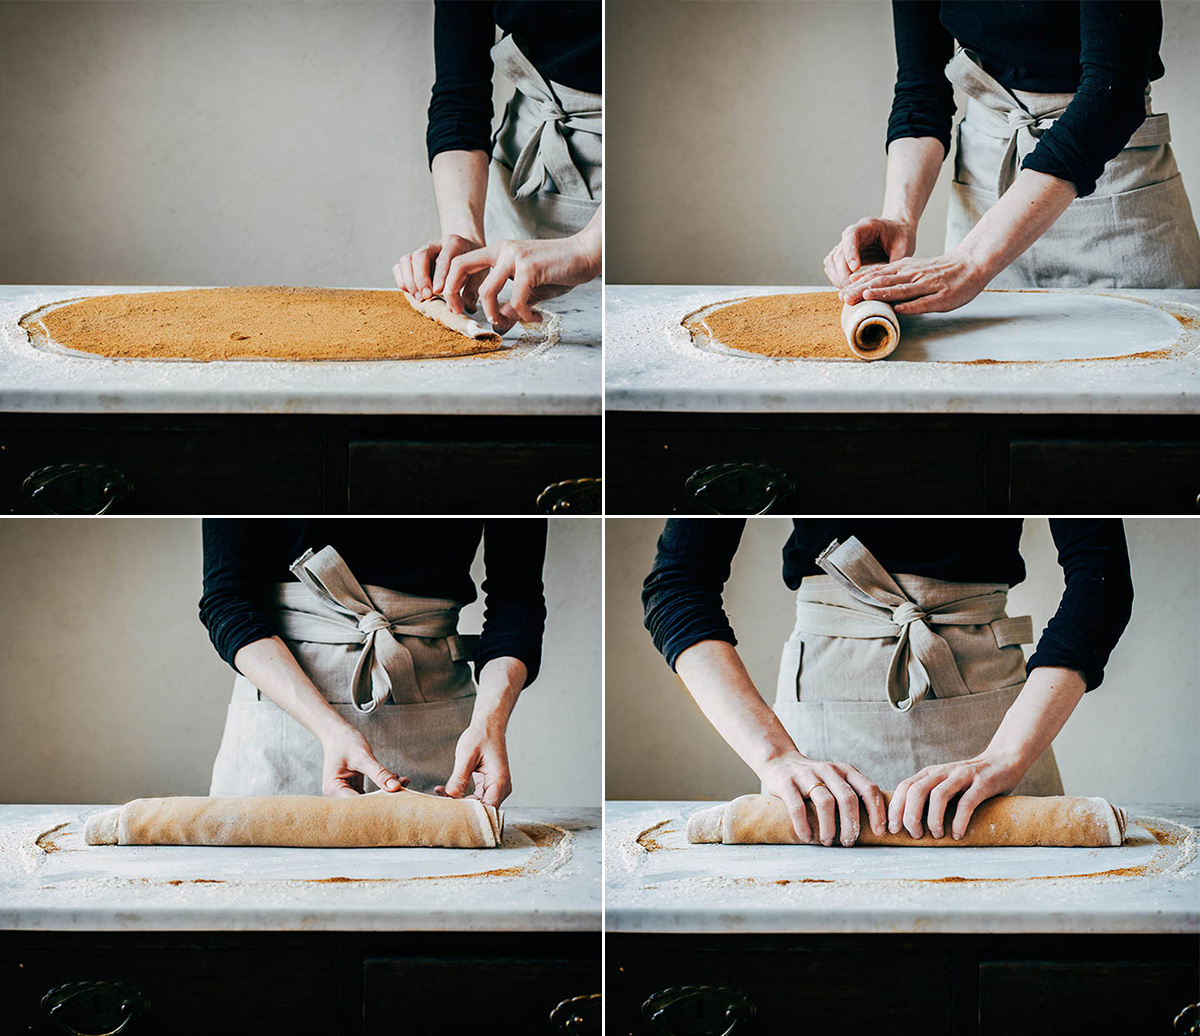 Steps of rolling cinnamon roll dough into a spiral.